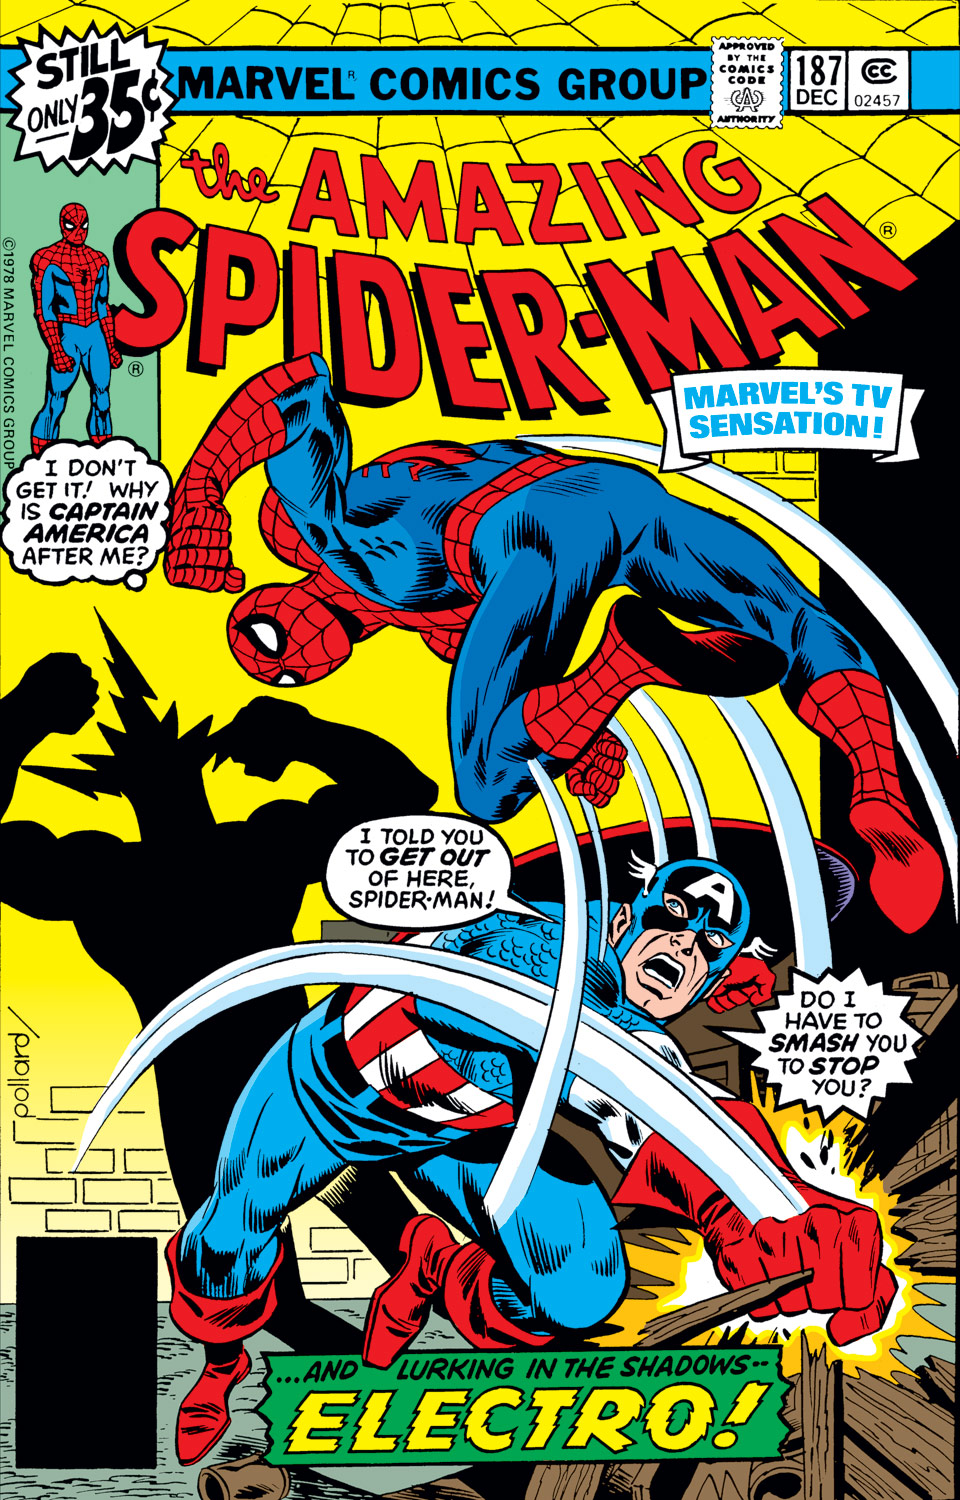 The Amazing Spider-Man (1963) #187